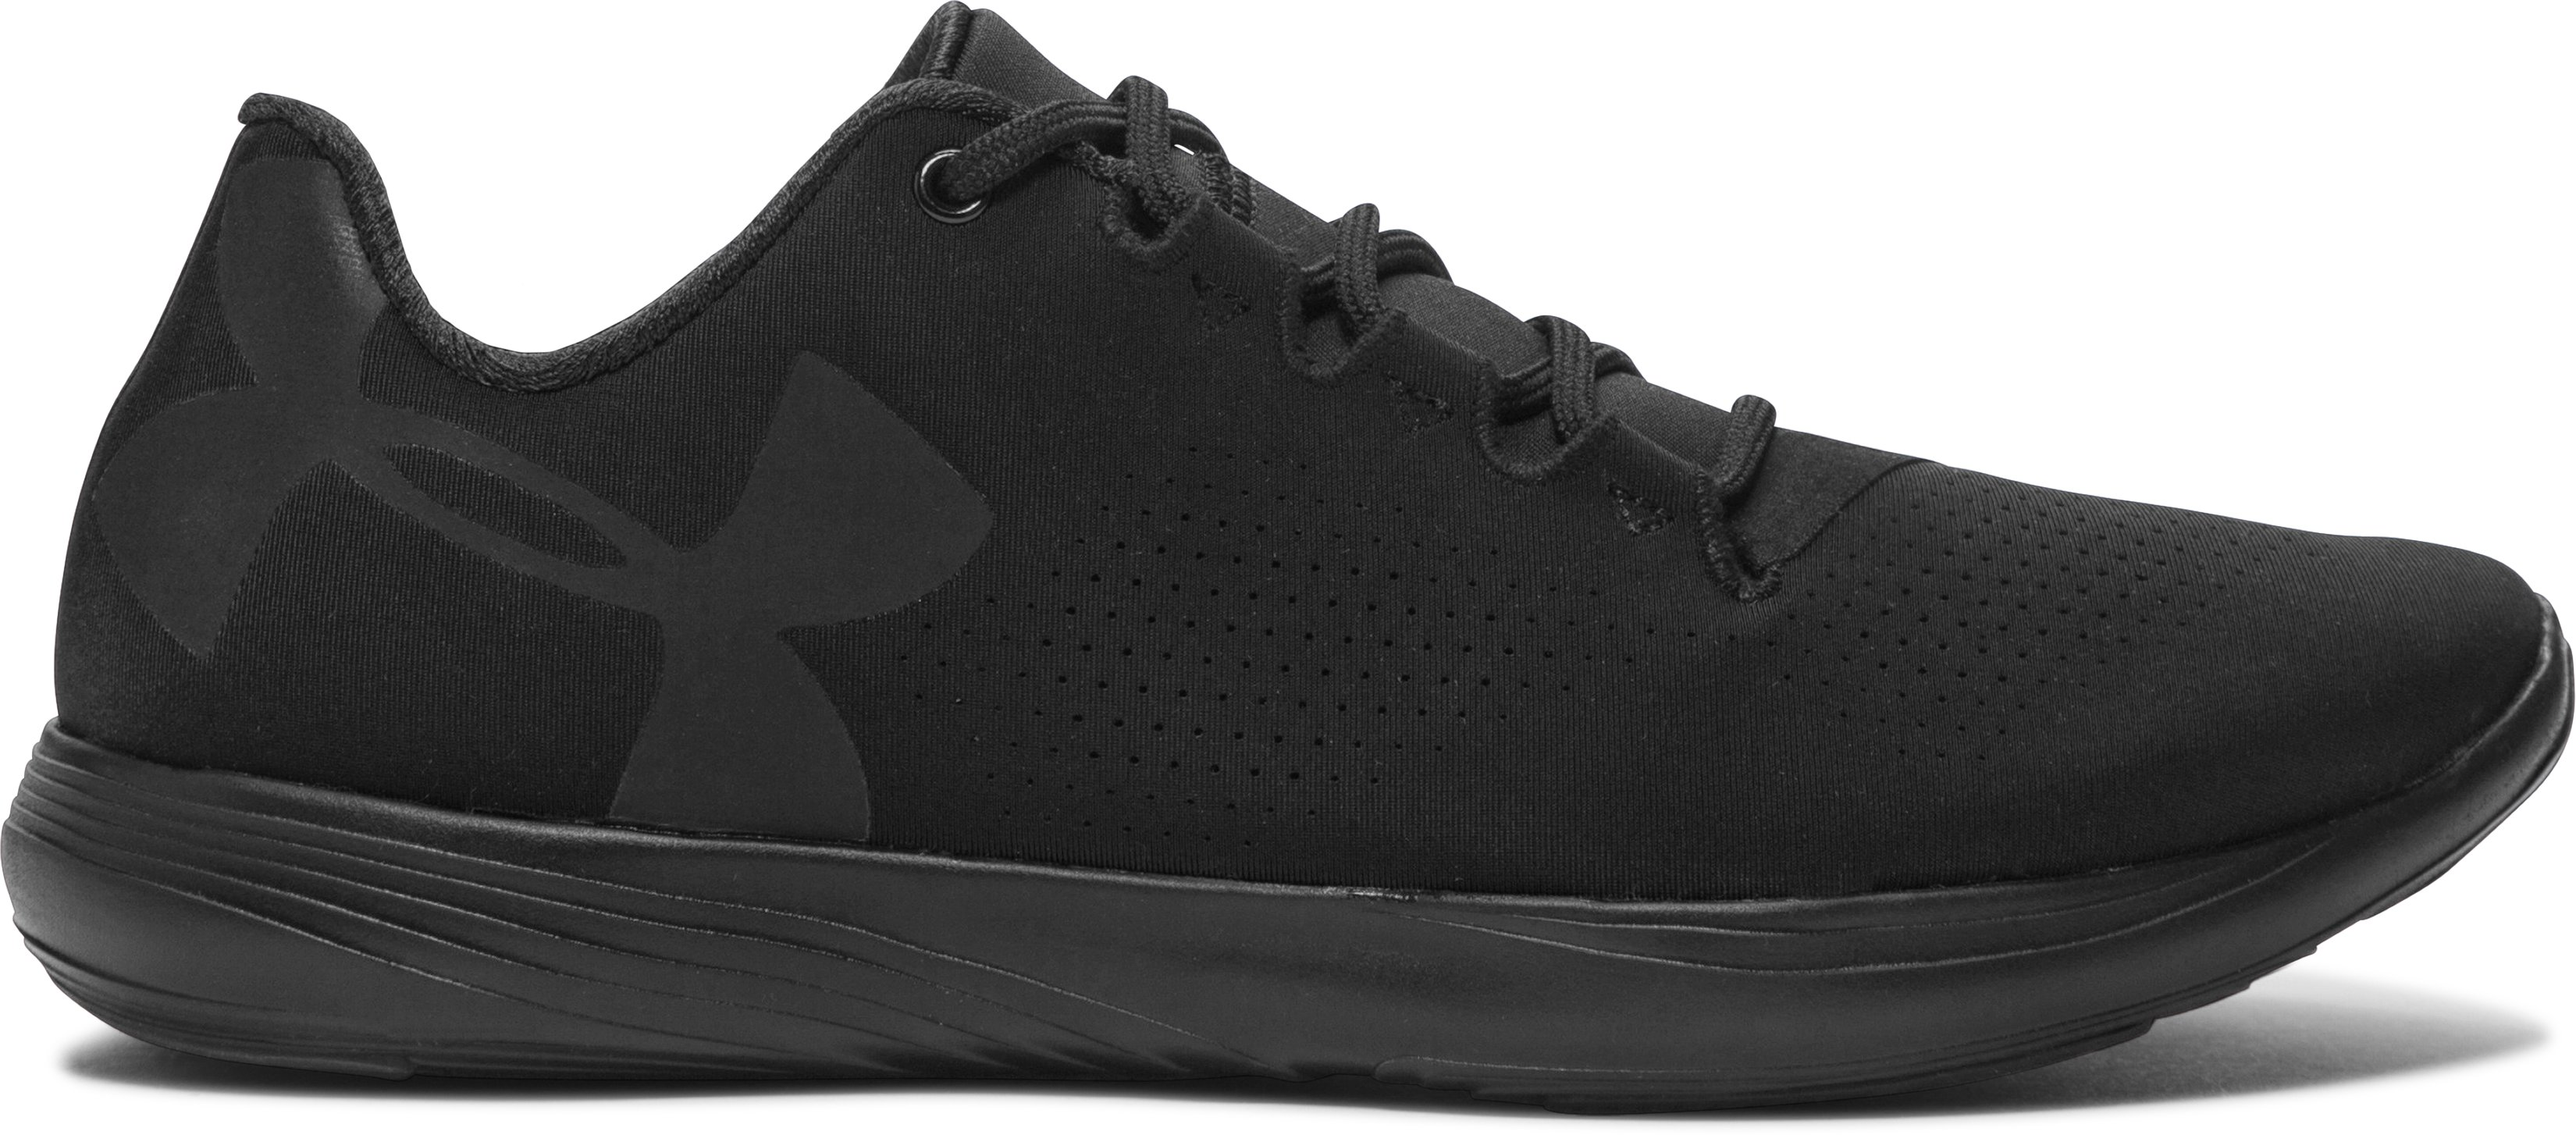 Women's UA Street Precision Low Training Shoes, Black ,